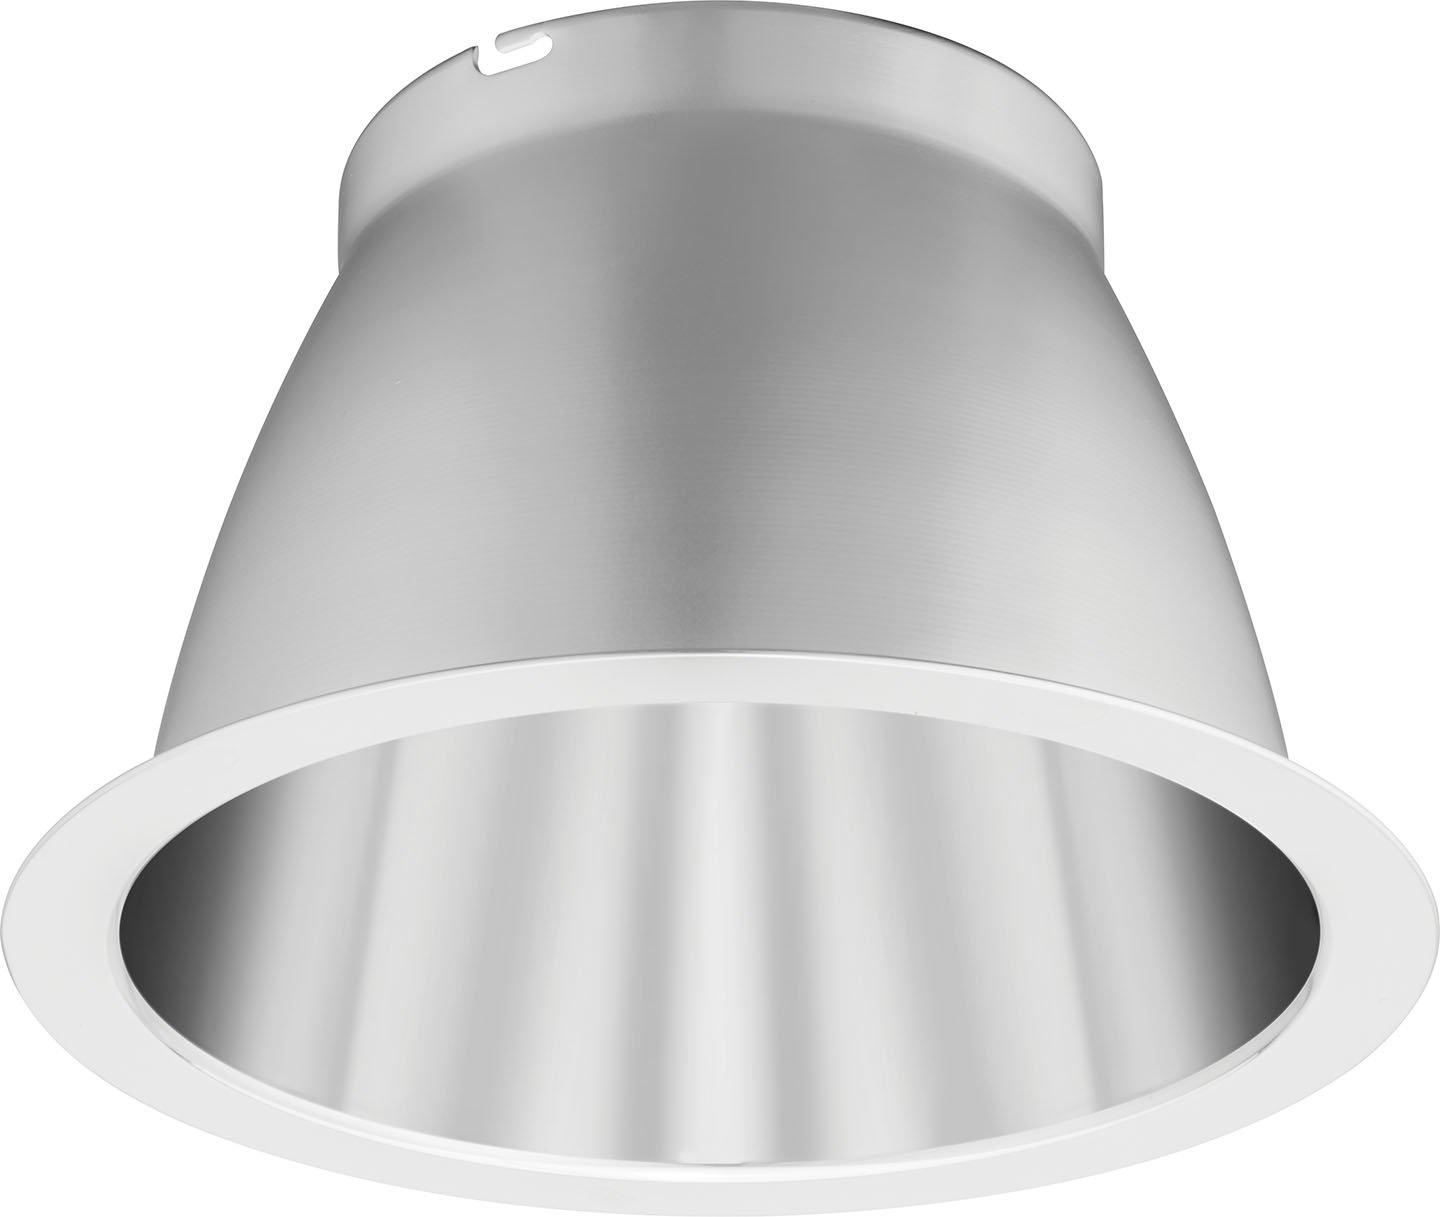 Lithonia Lighting LO6AR LD LDN 6-Inch Open Matte-Diffuse Clear LED Downlighting Trim by Lithonia Lighting